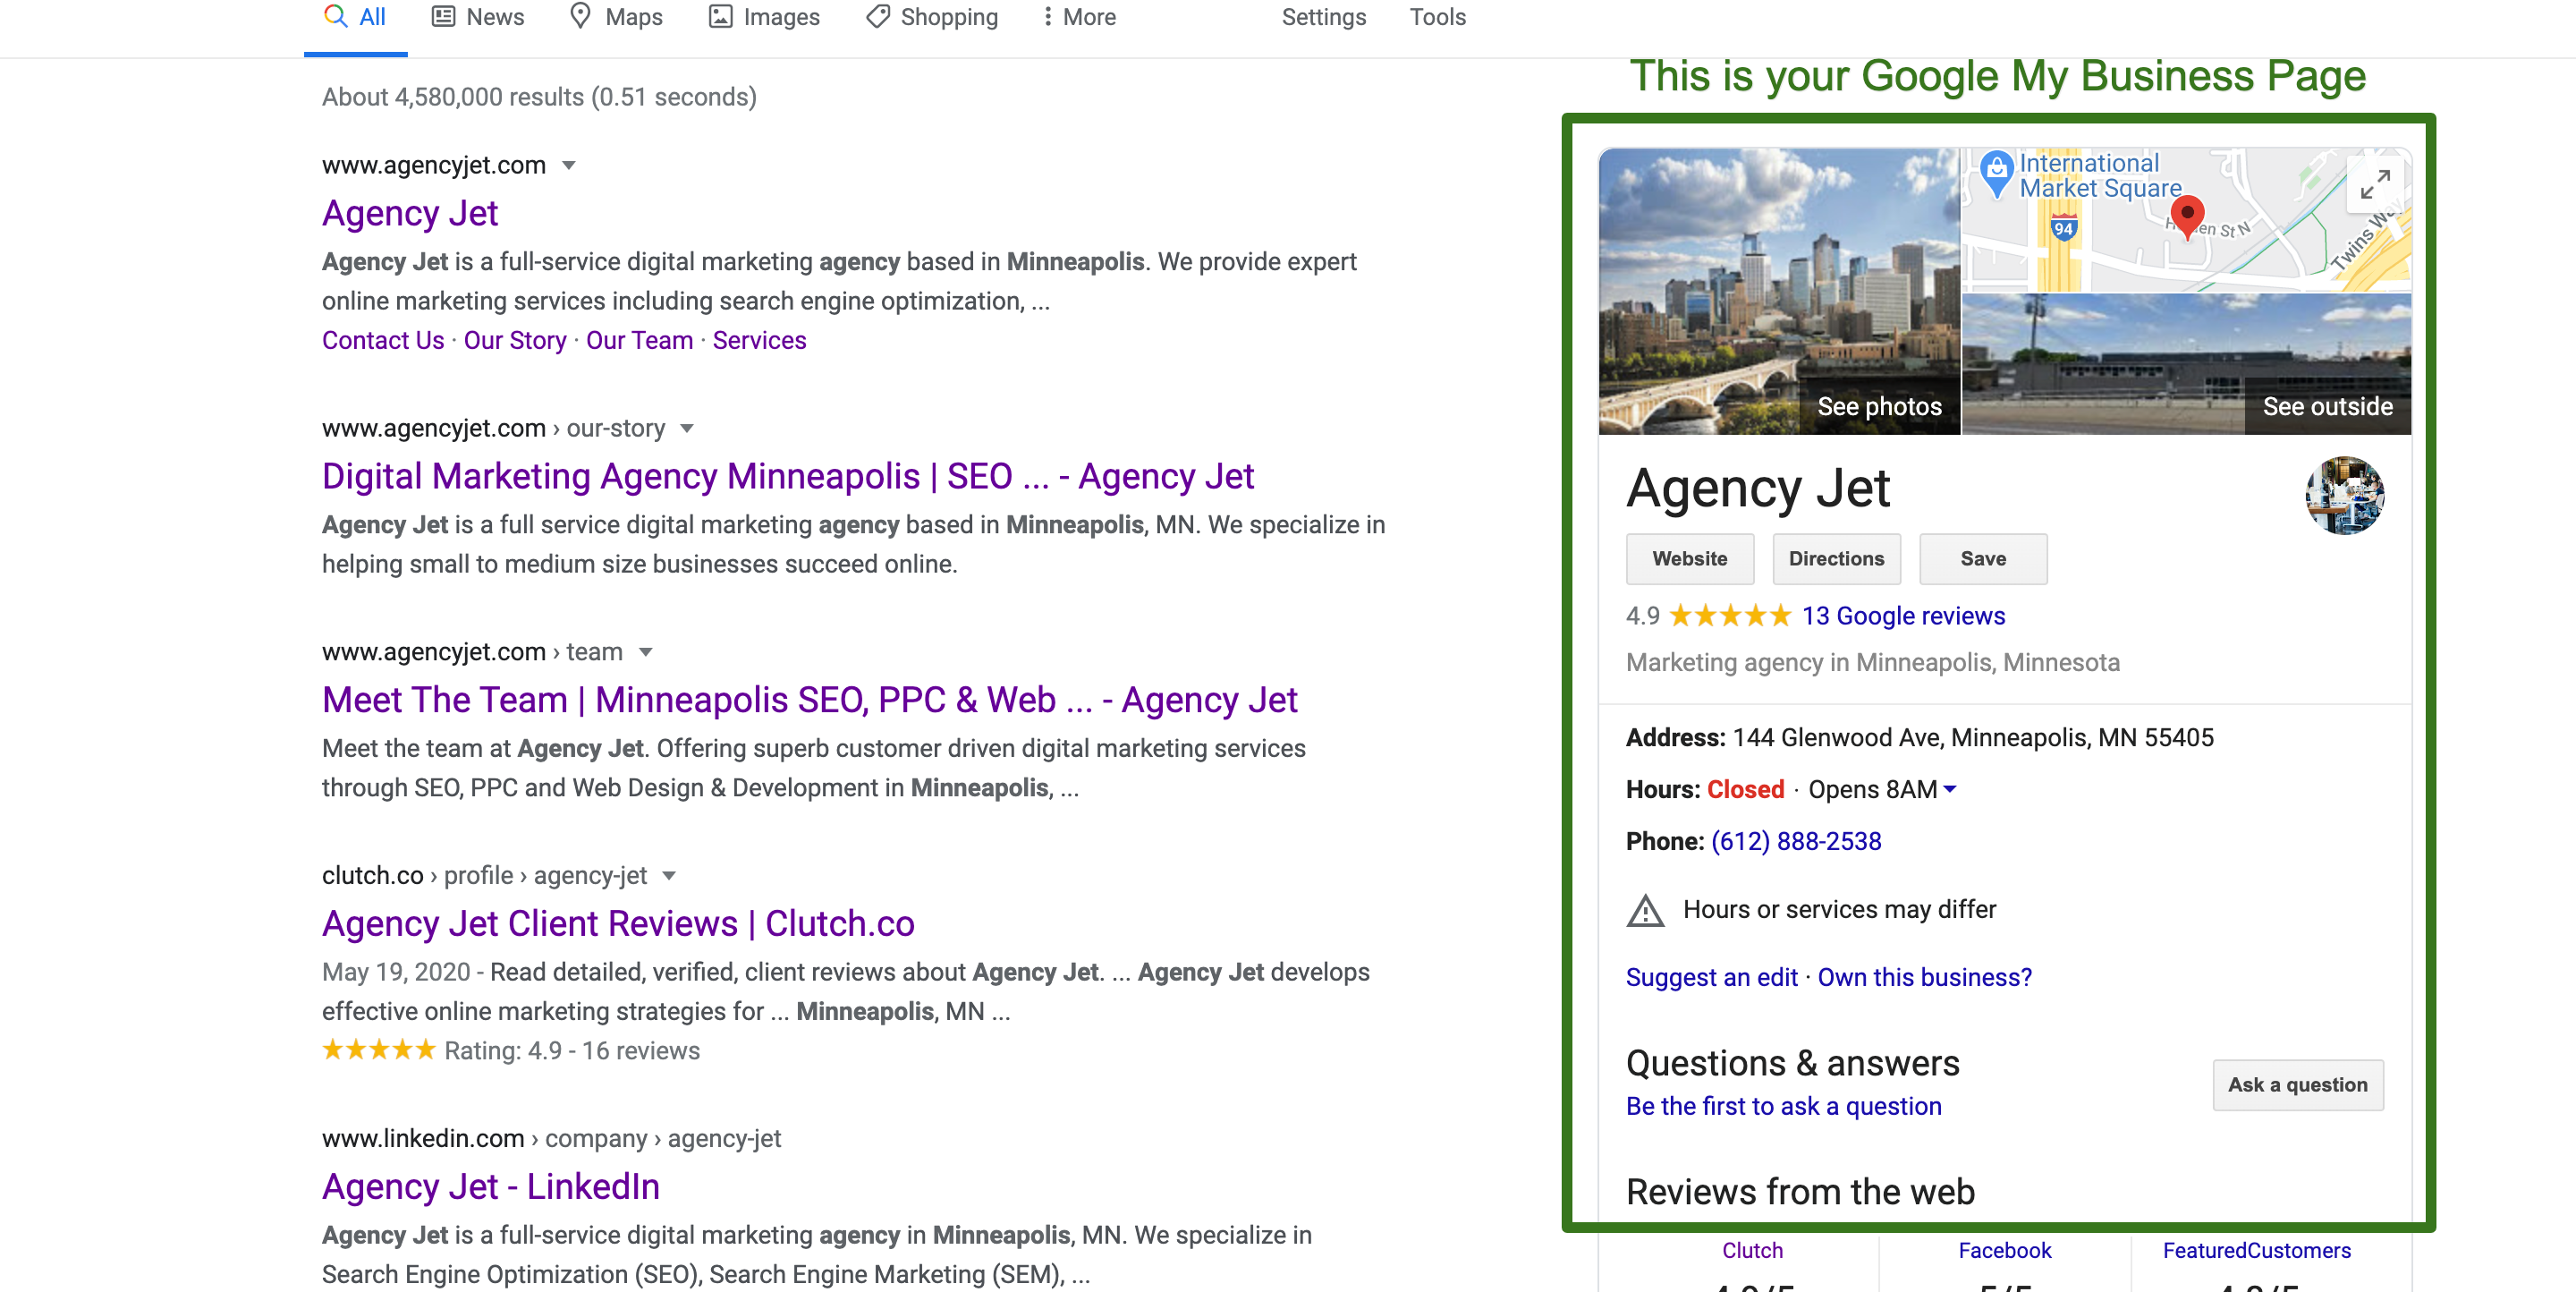 agency_jet_minneapolis_Google_Search